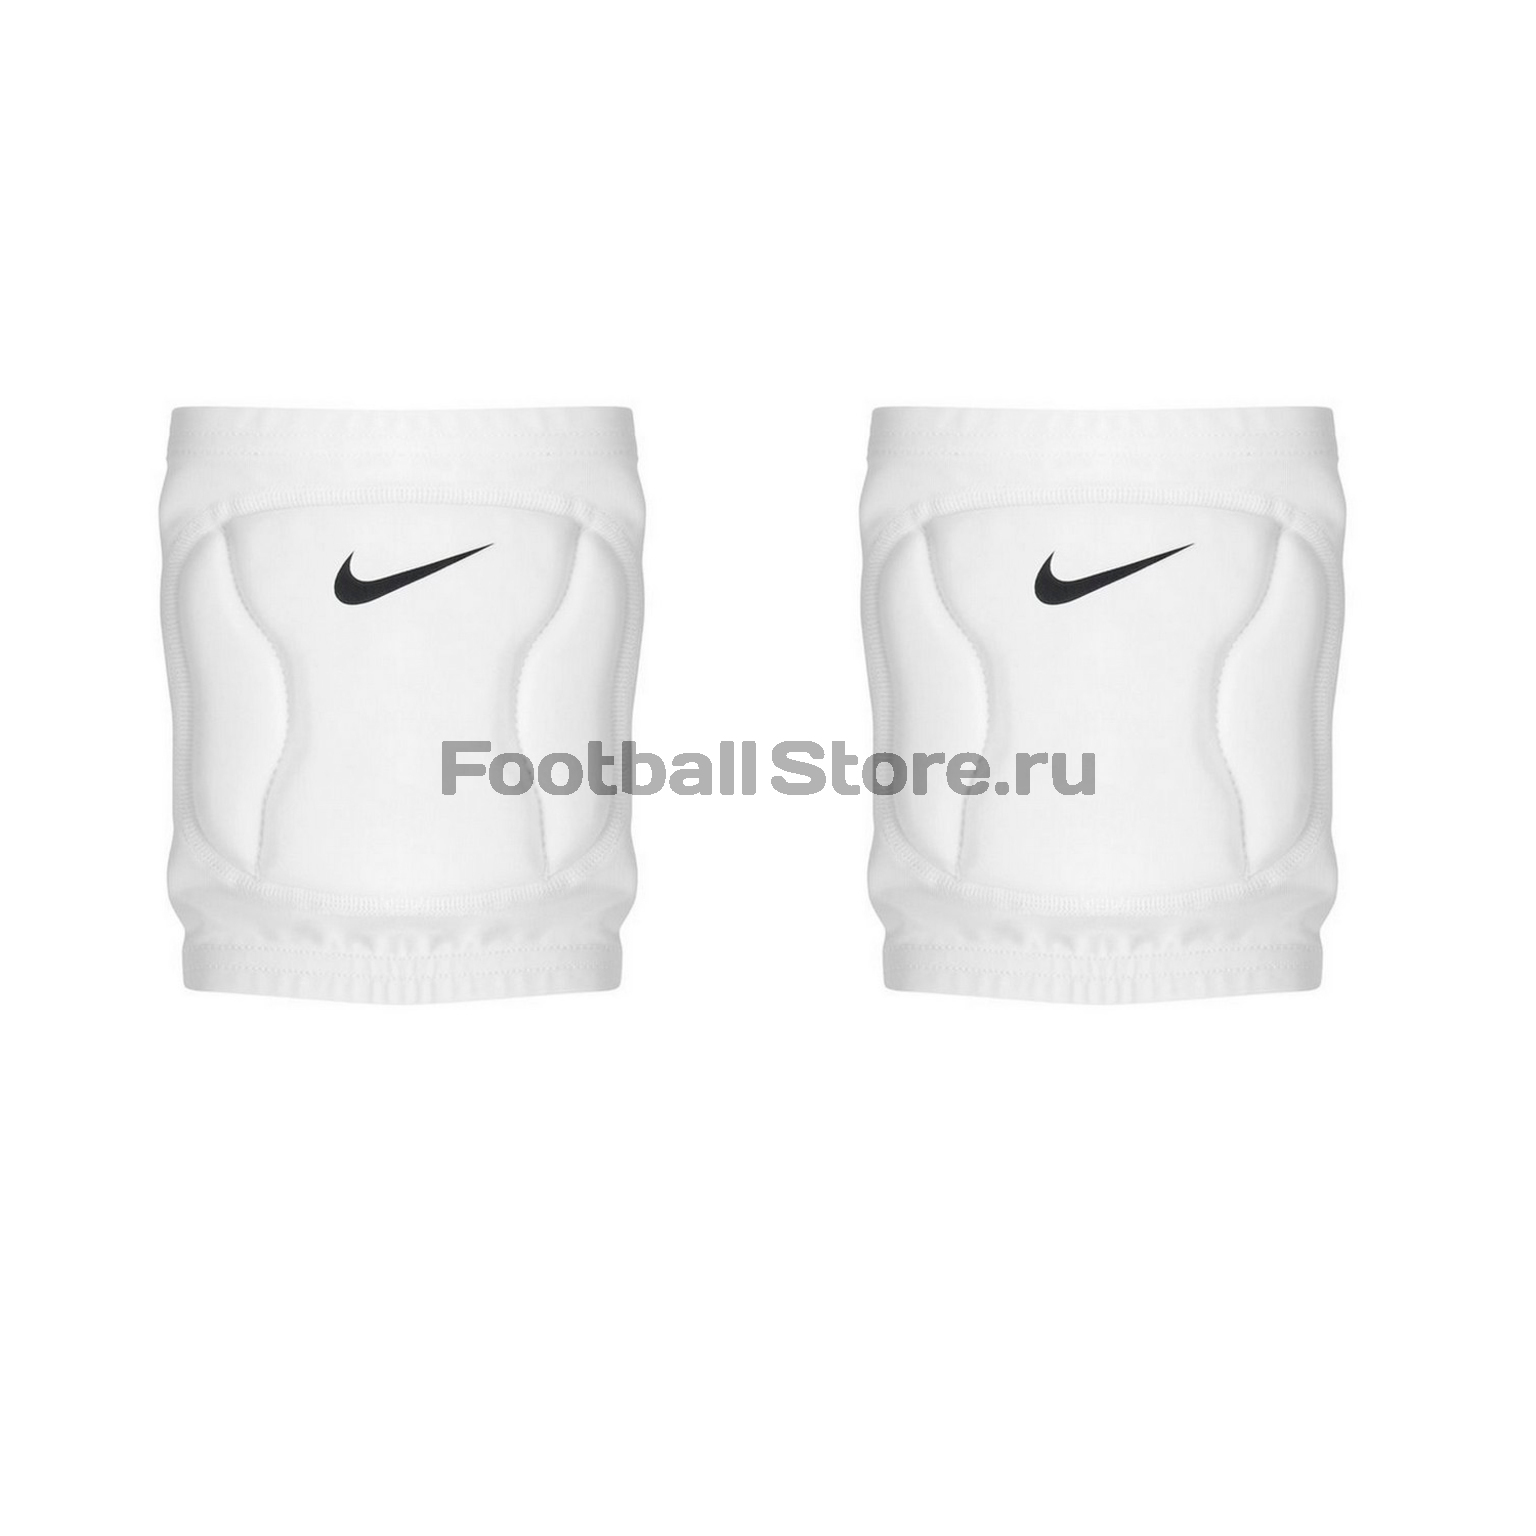 Наколенники Nike Streak Volleyball Knee Pad White N.VP.07.100 цена 2017